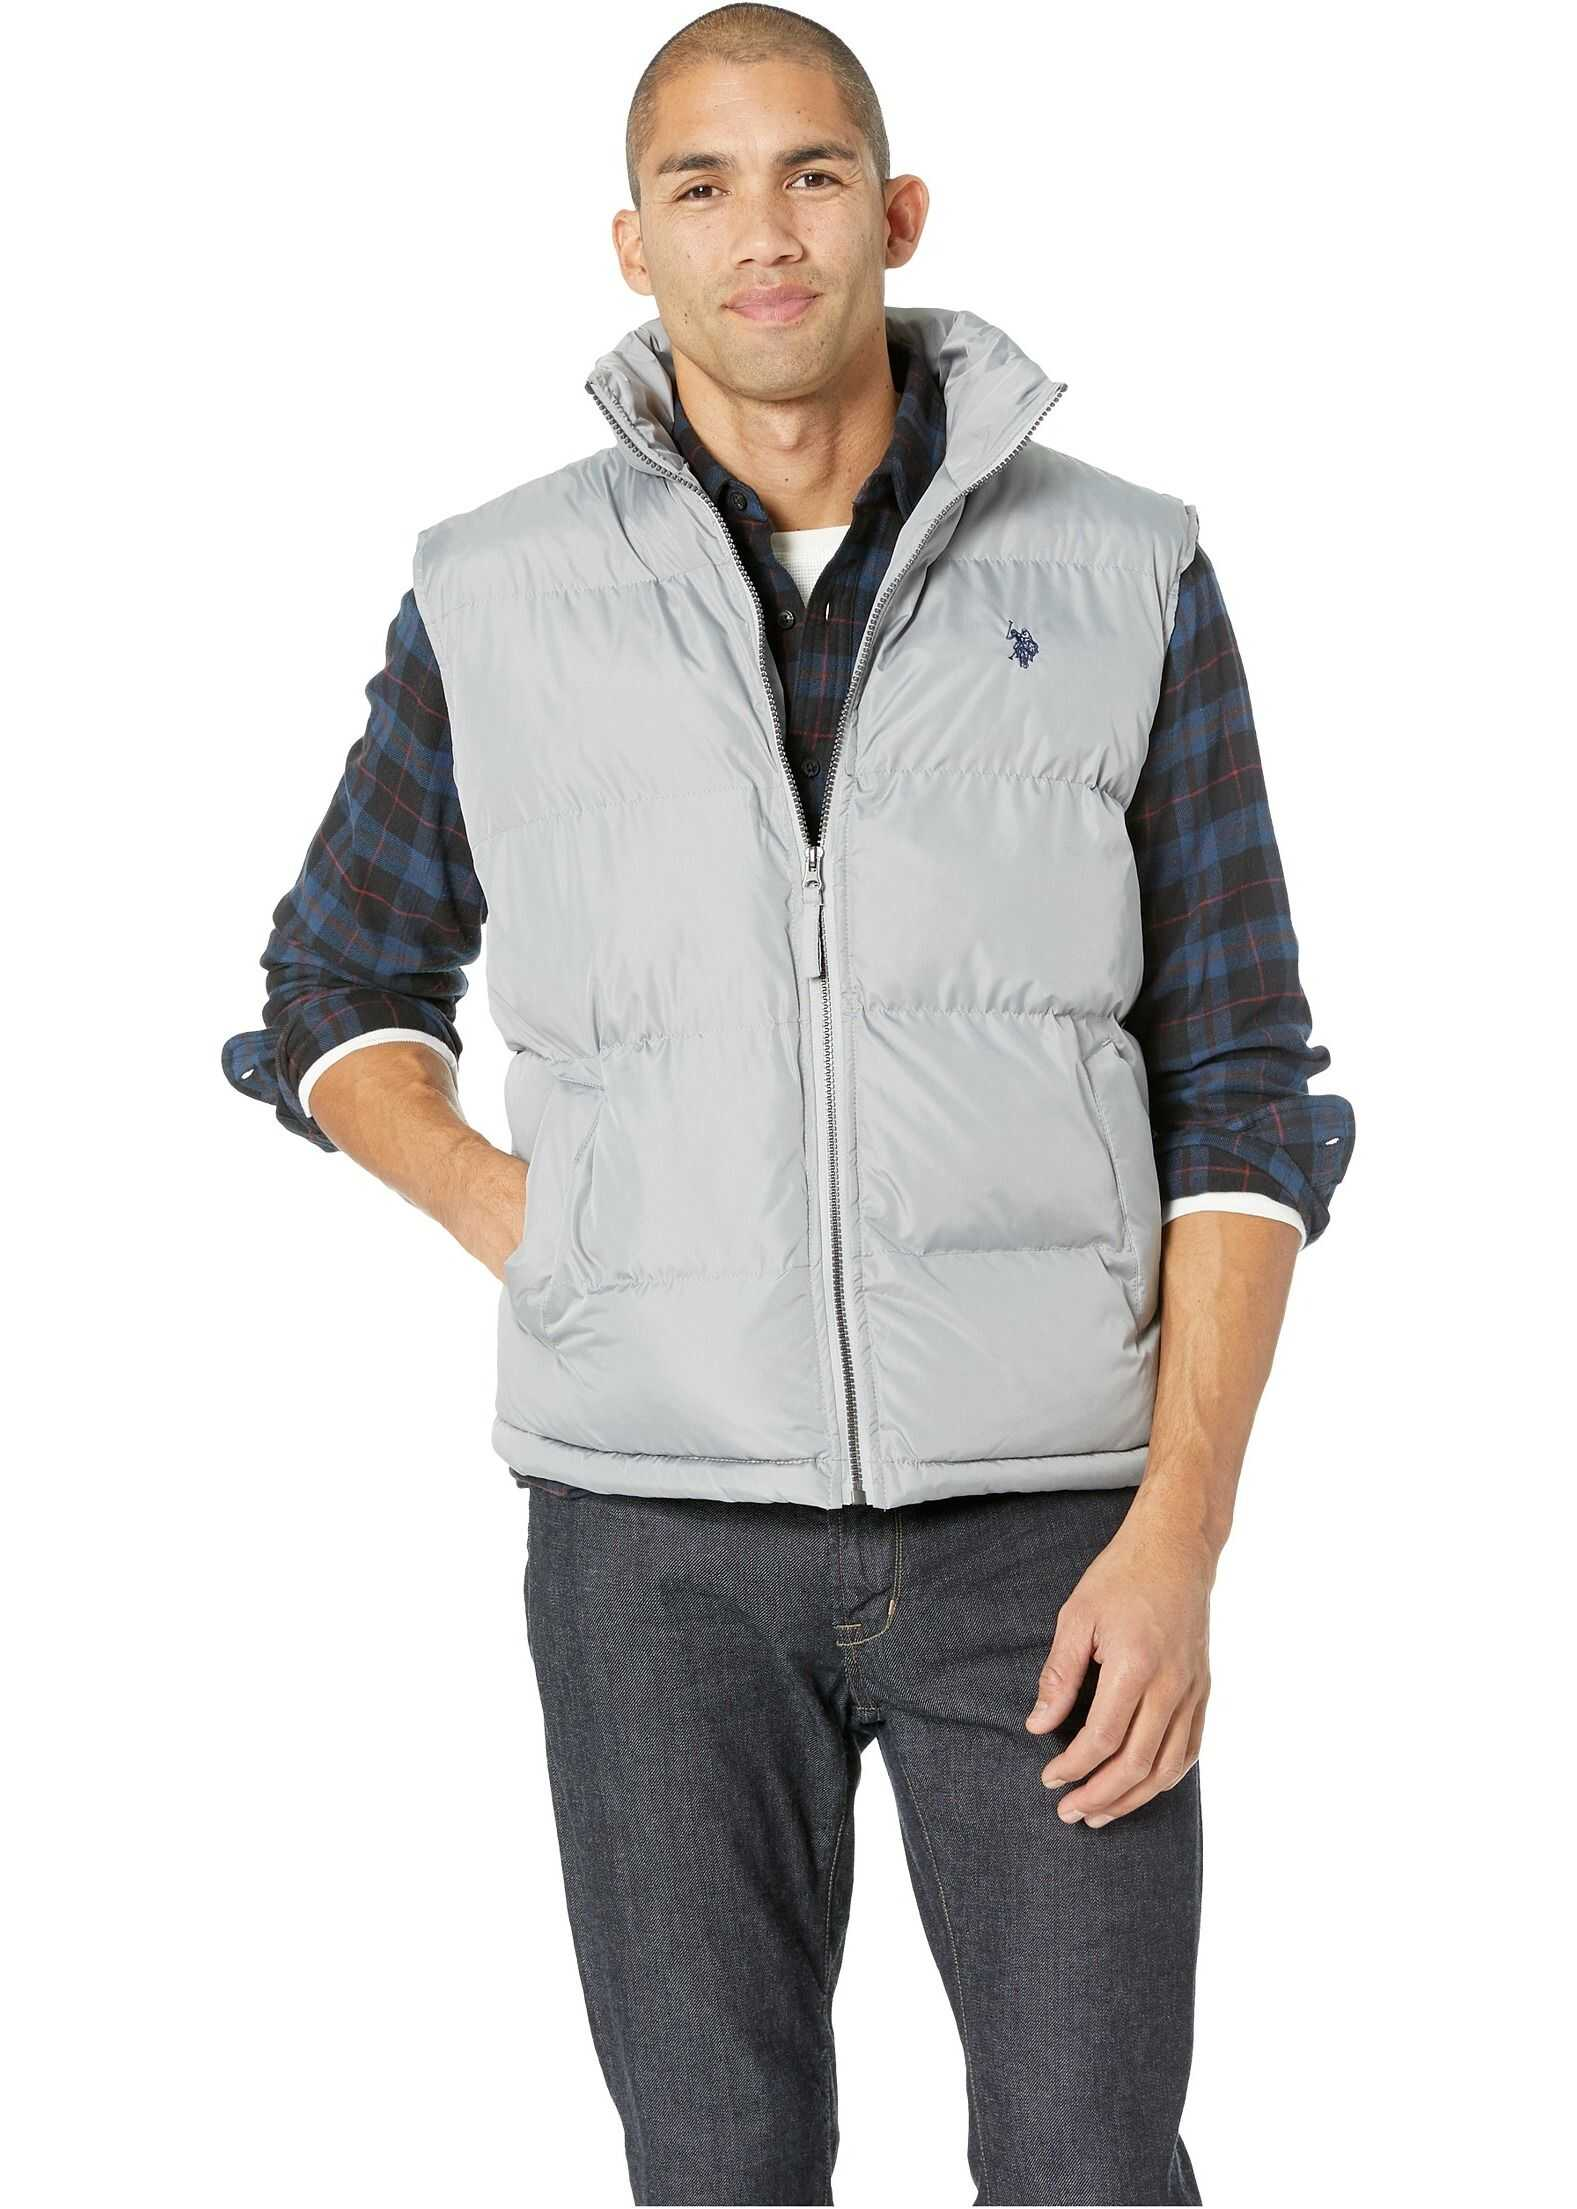 U.S. POLO ASSN. Basic Vest Small Horse Vapor Grey